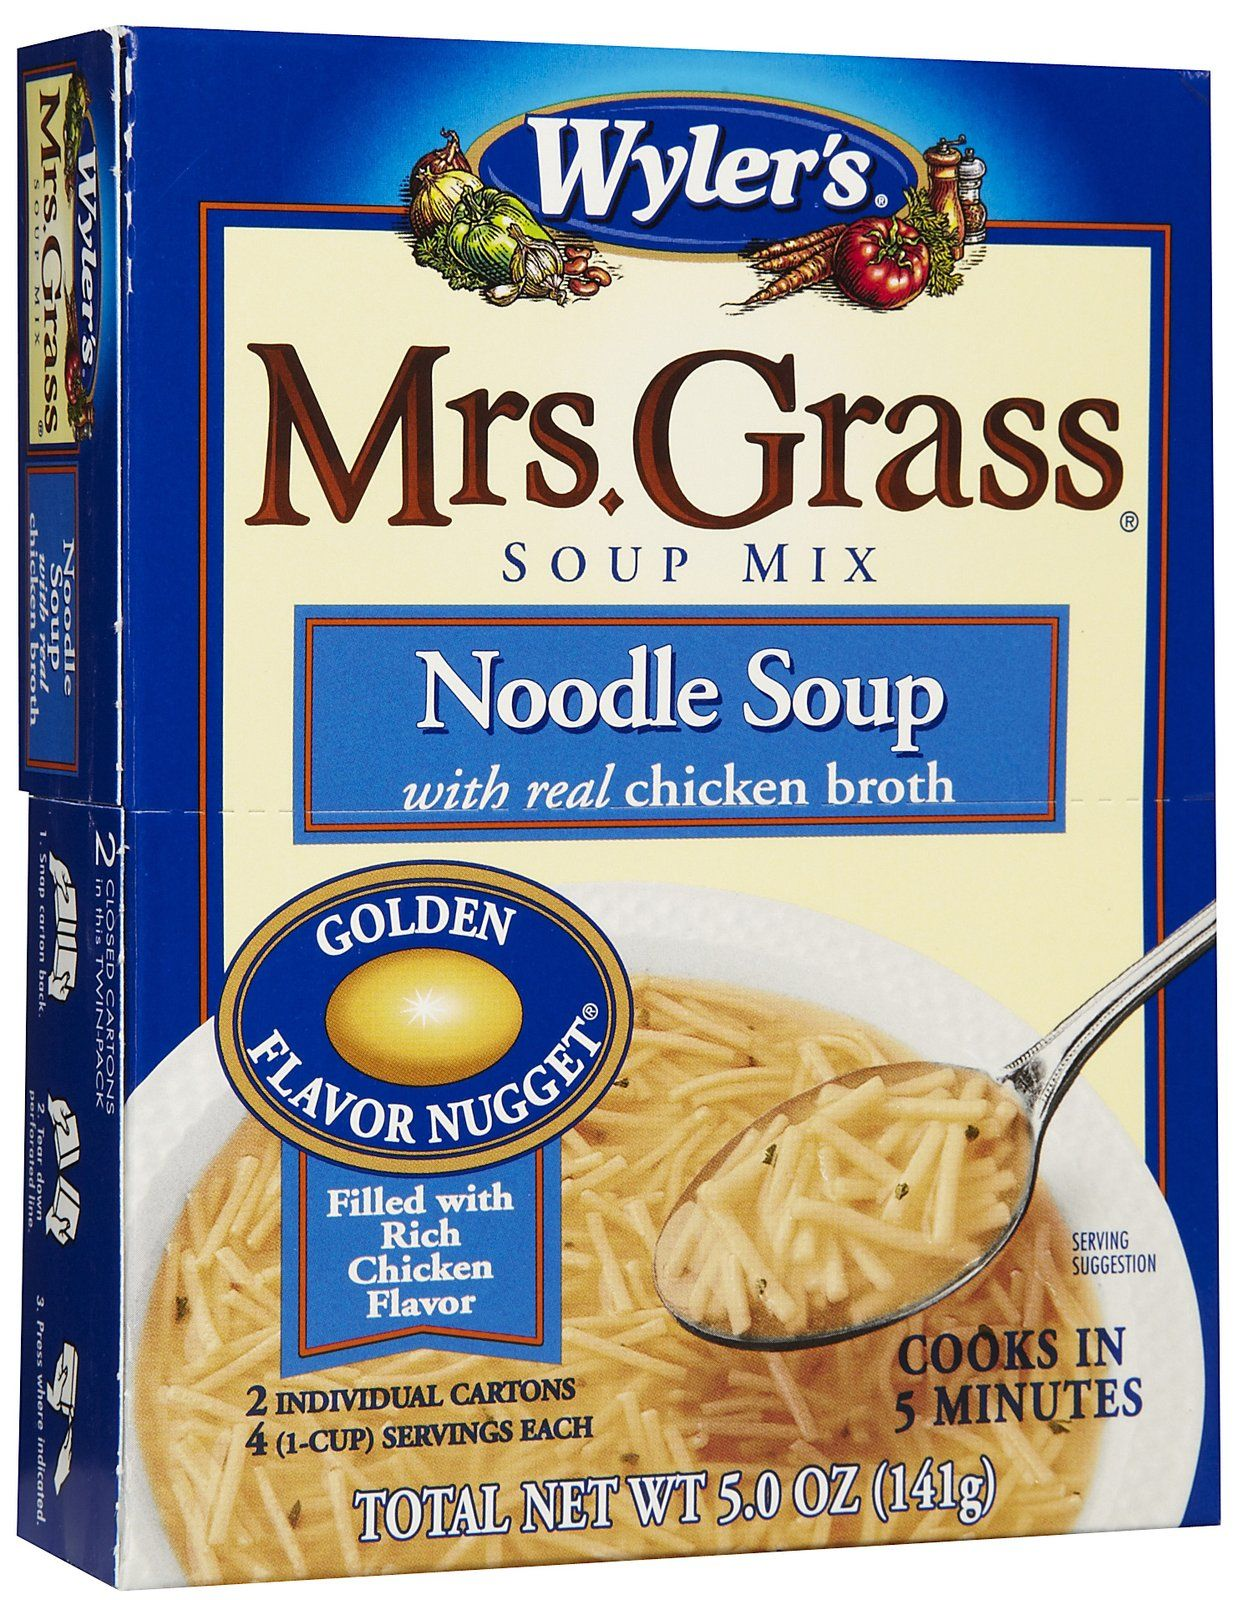 Mrs. Grass chicken noodle soup is yummy if you are feeling